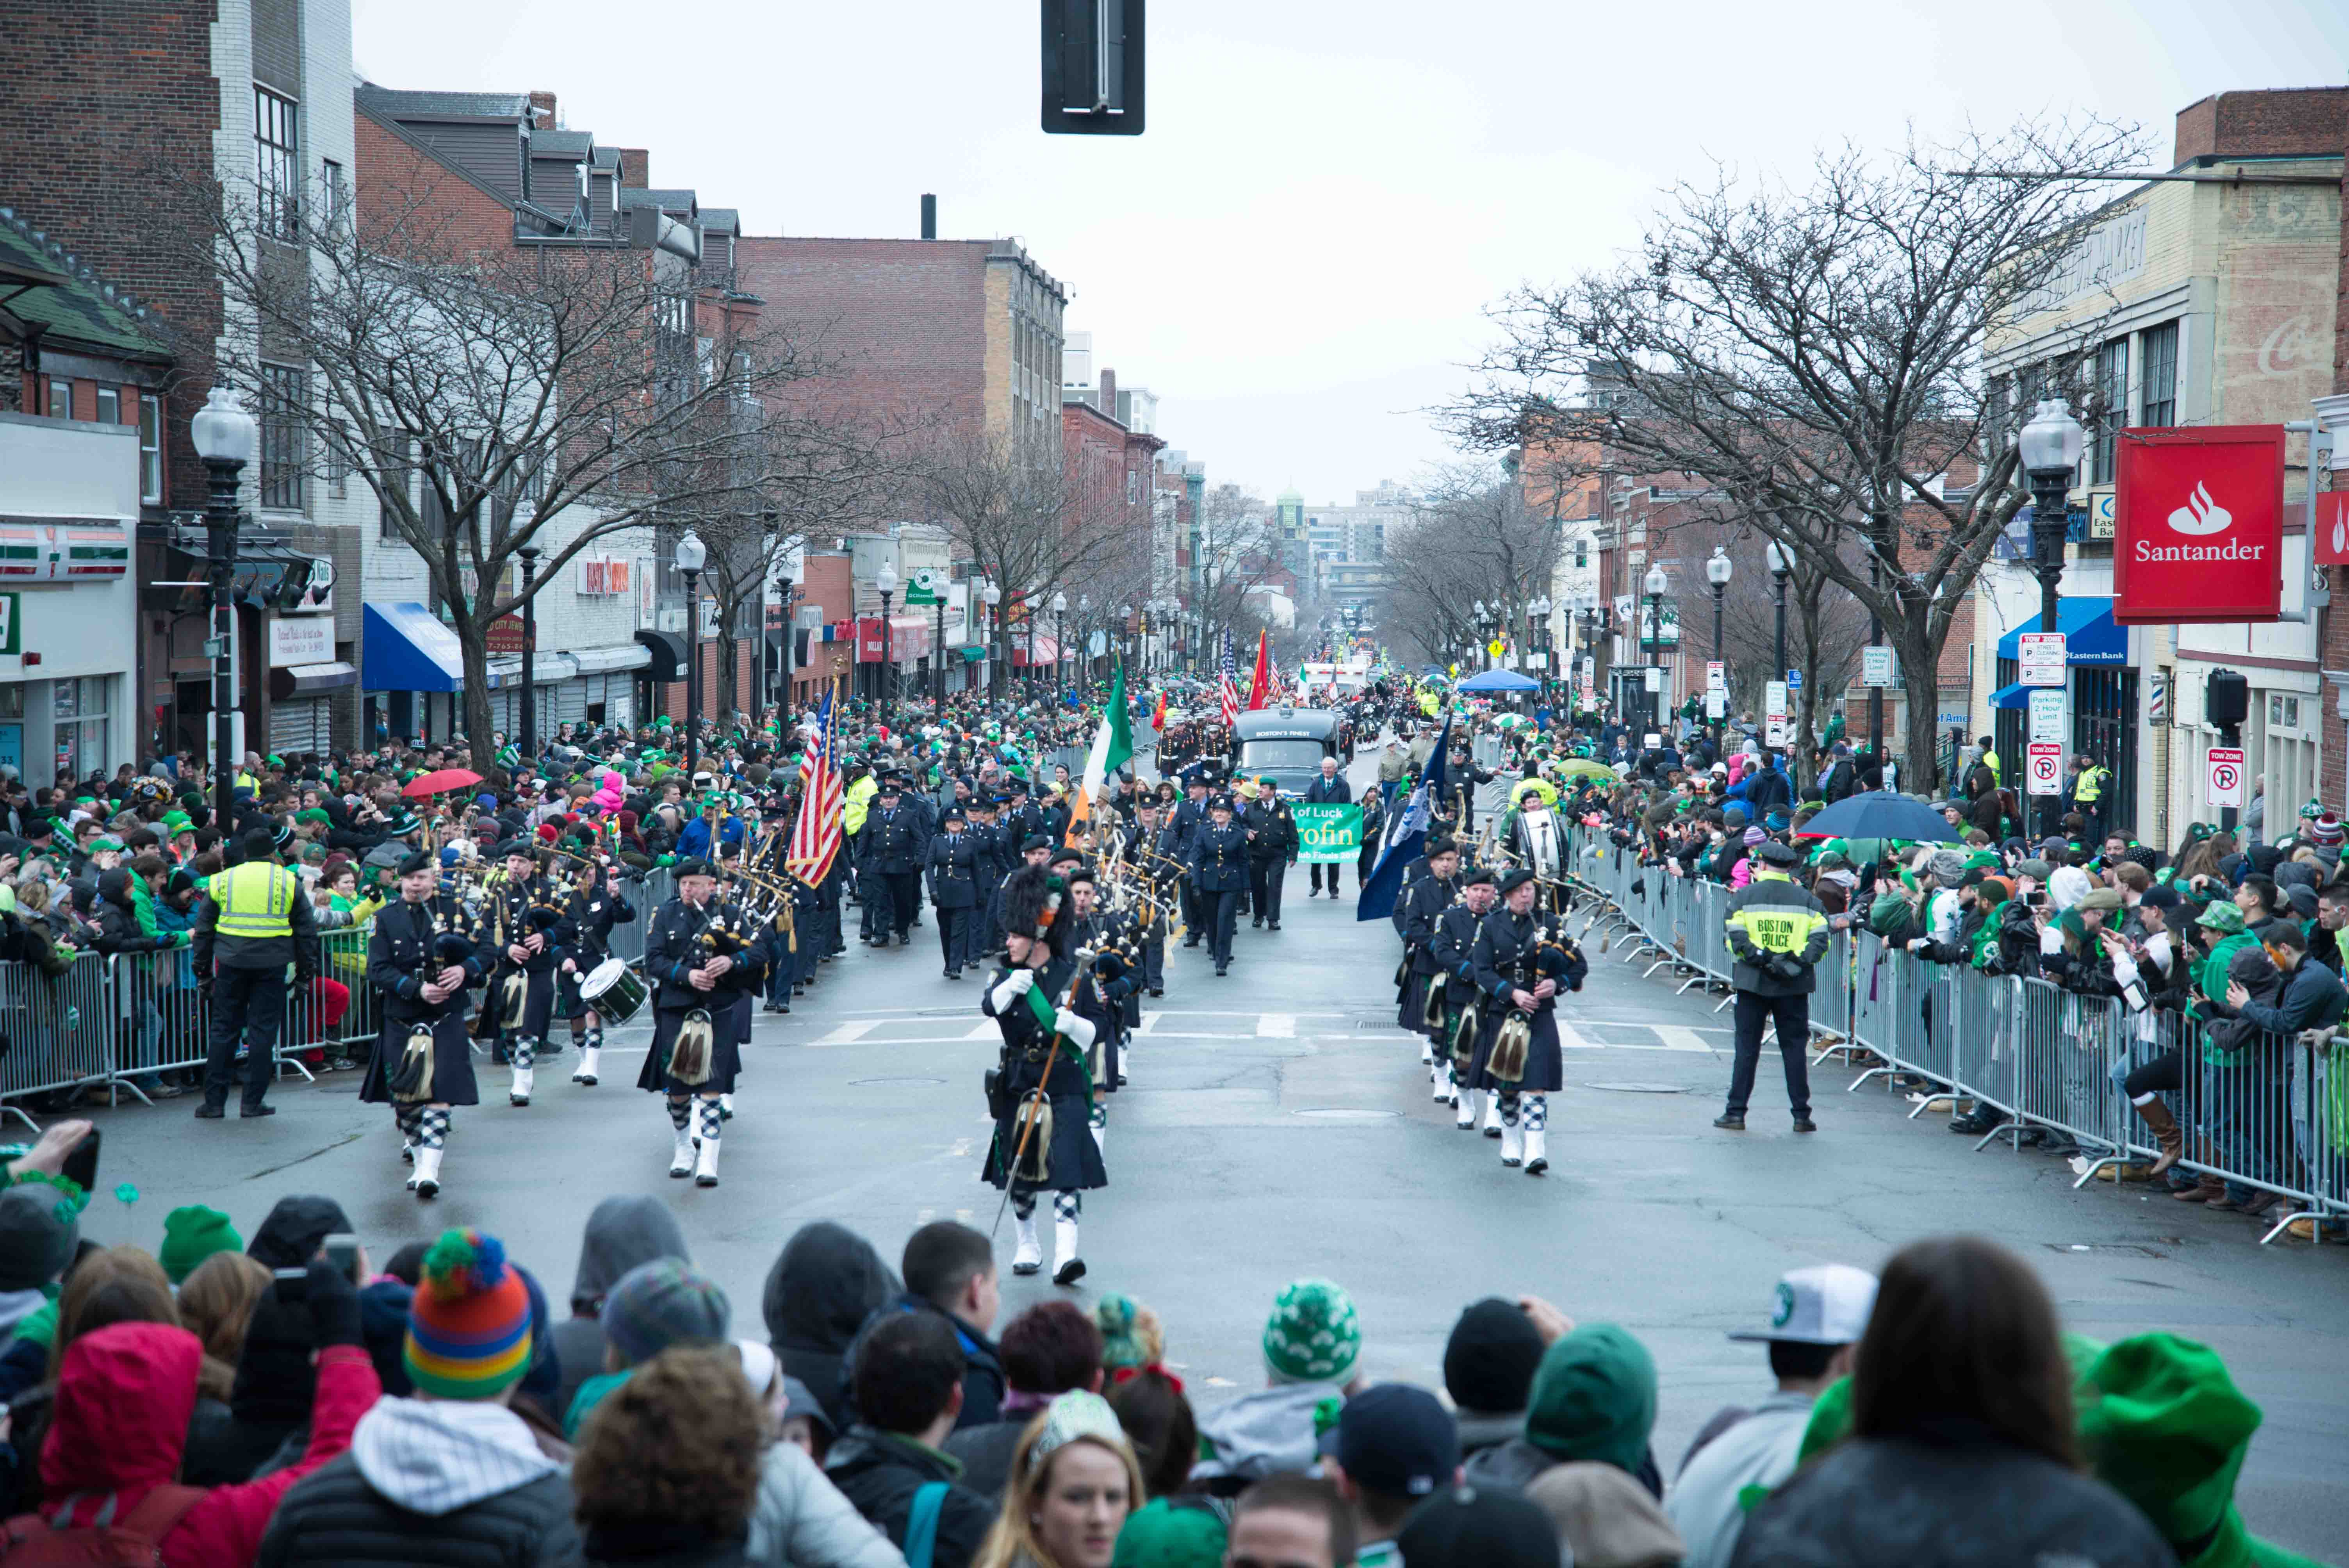 A band with bagpipes and drums plays during Southie's annual parade on March 15.